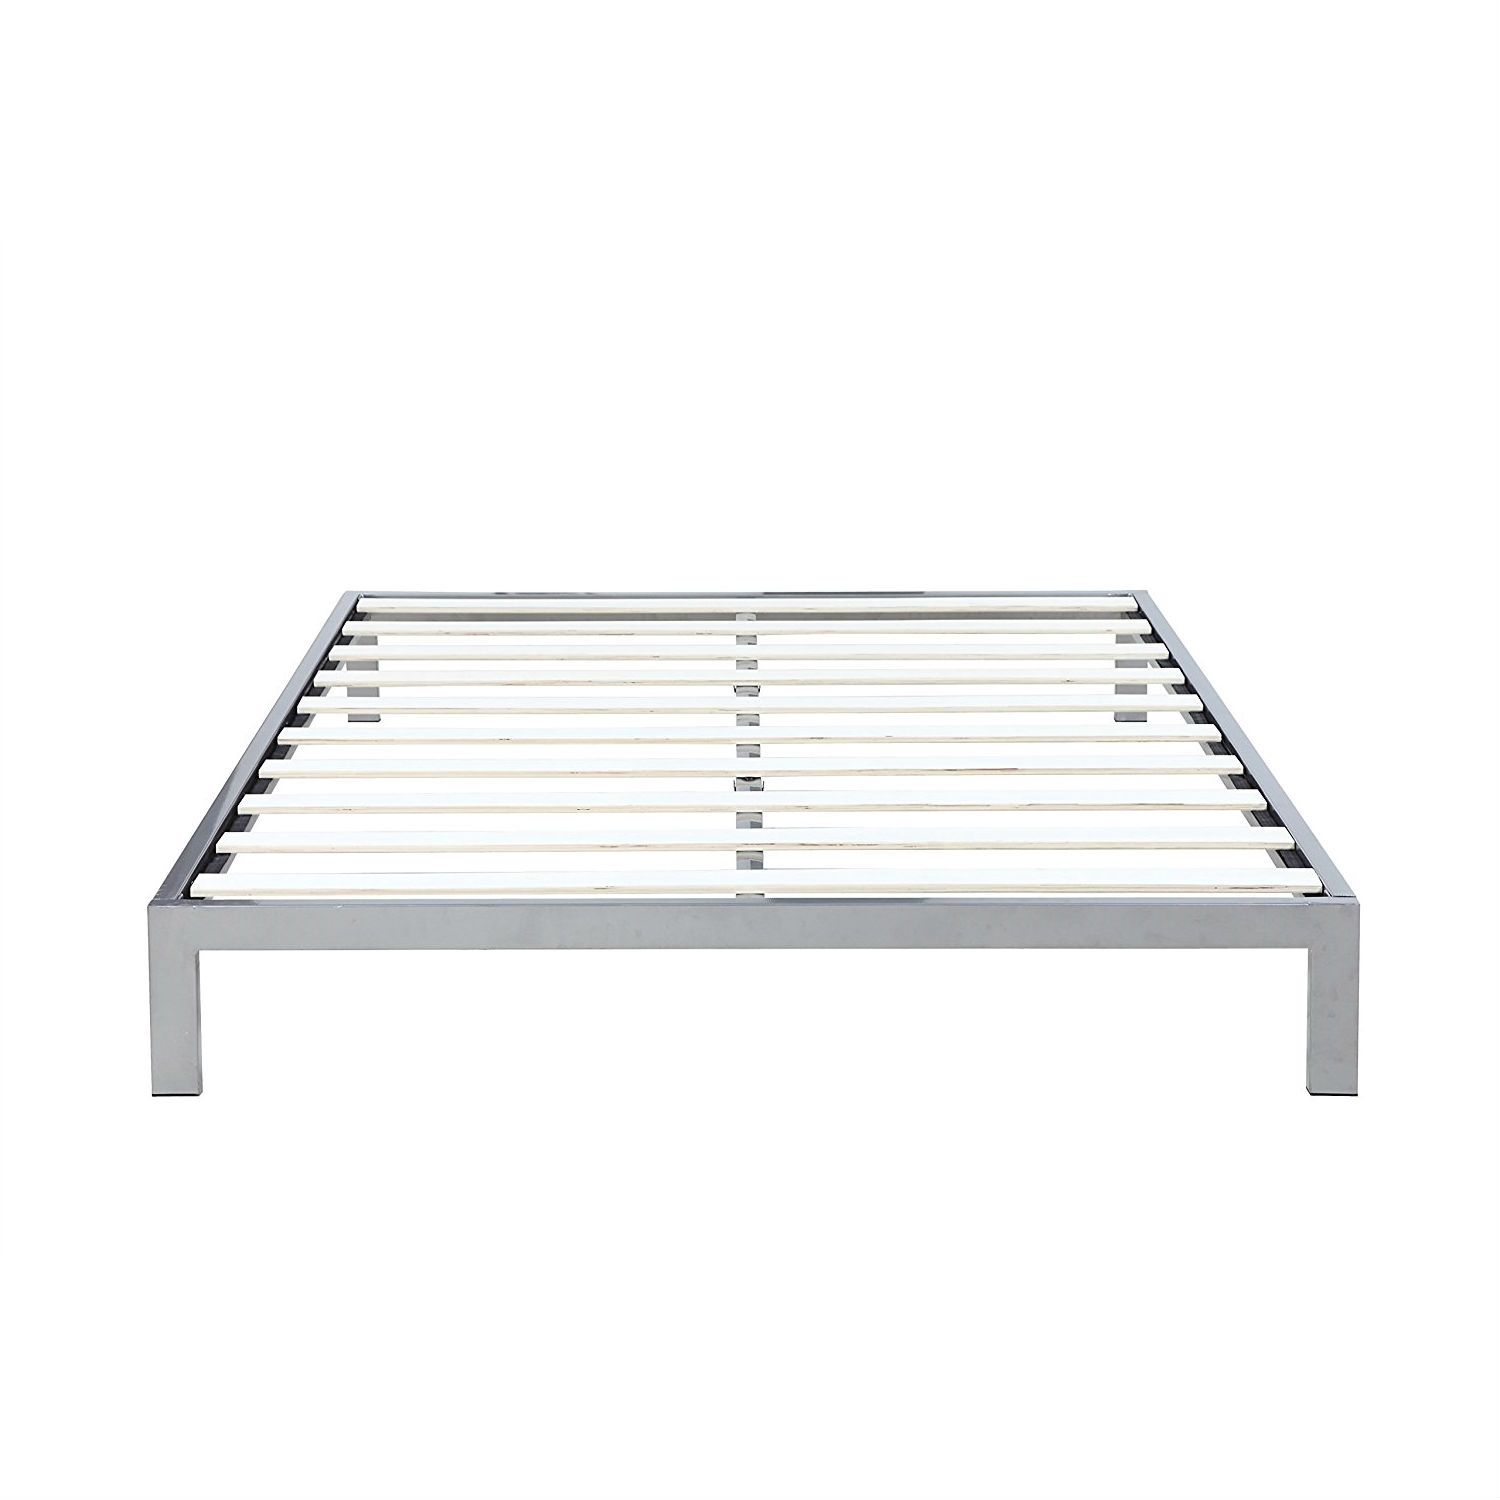 Queen size Silver Metal Platform Bed Frame with Wooden Slats